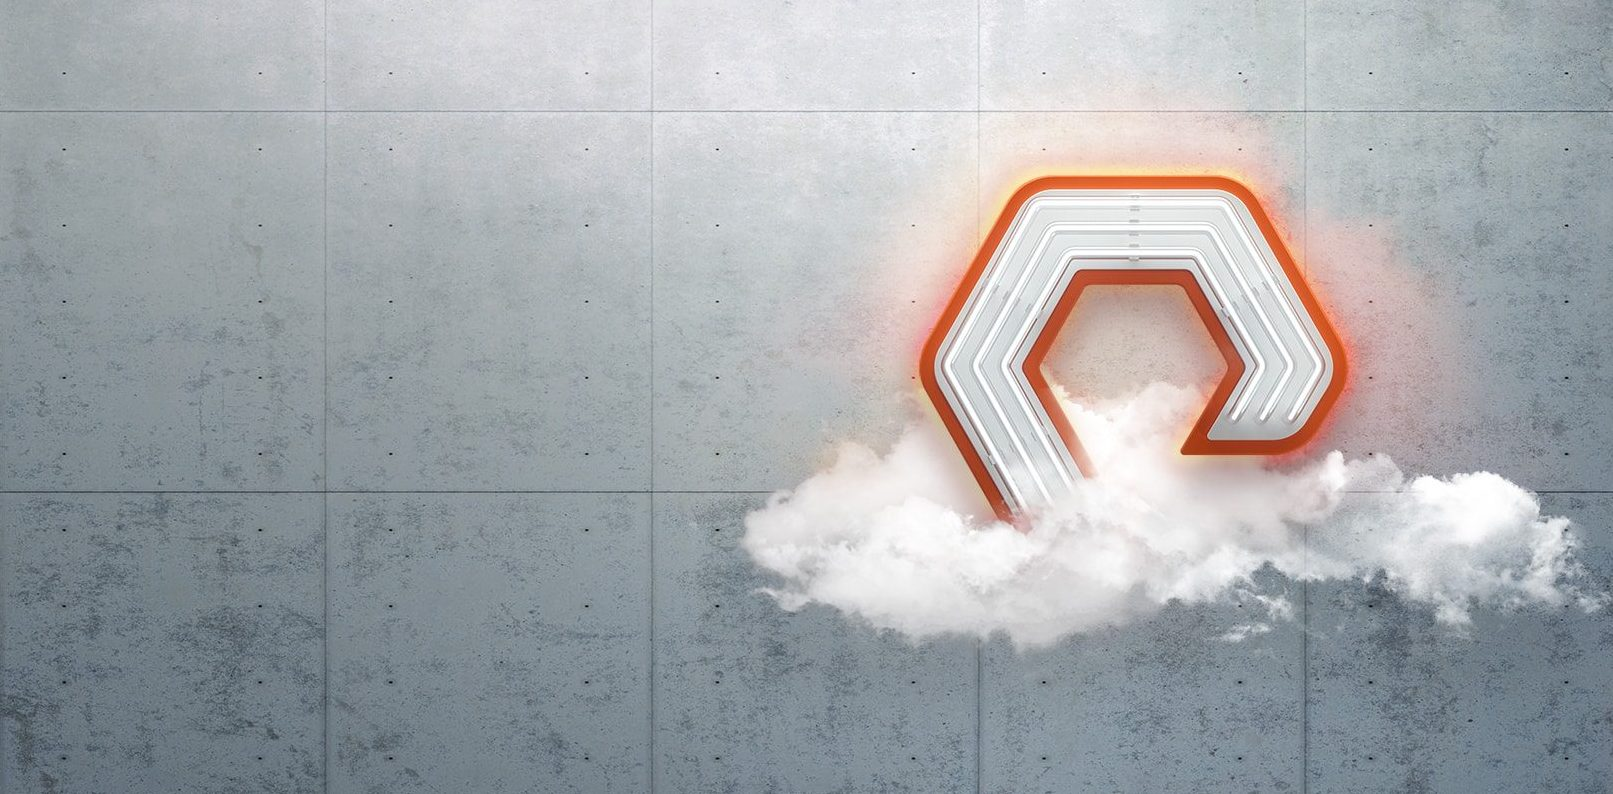 How will Fusion and Portworx Data Services impact the future direction of Pure Storage?